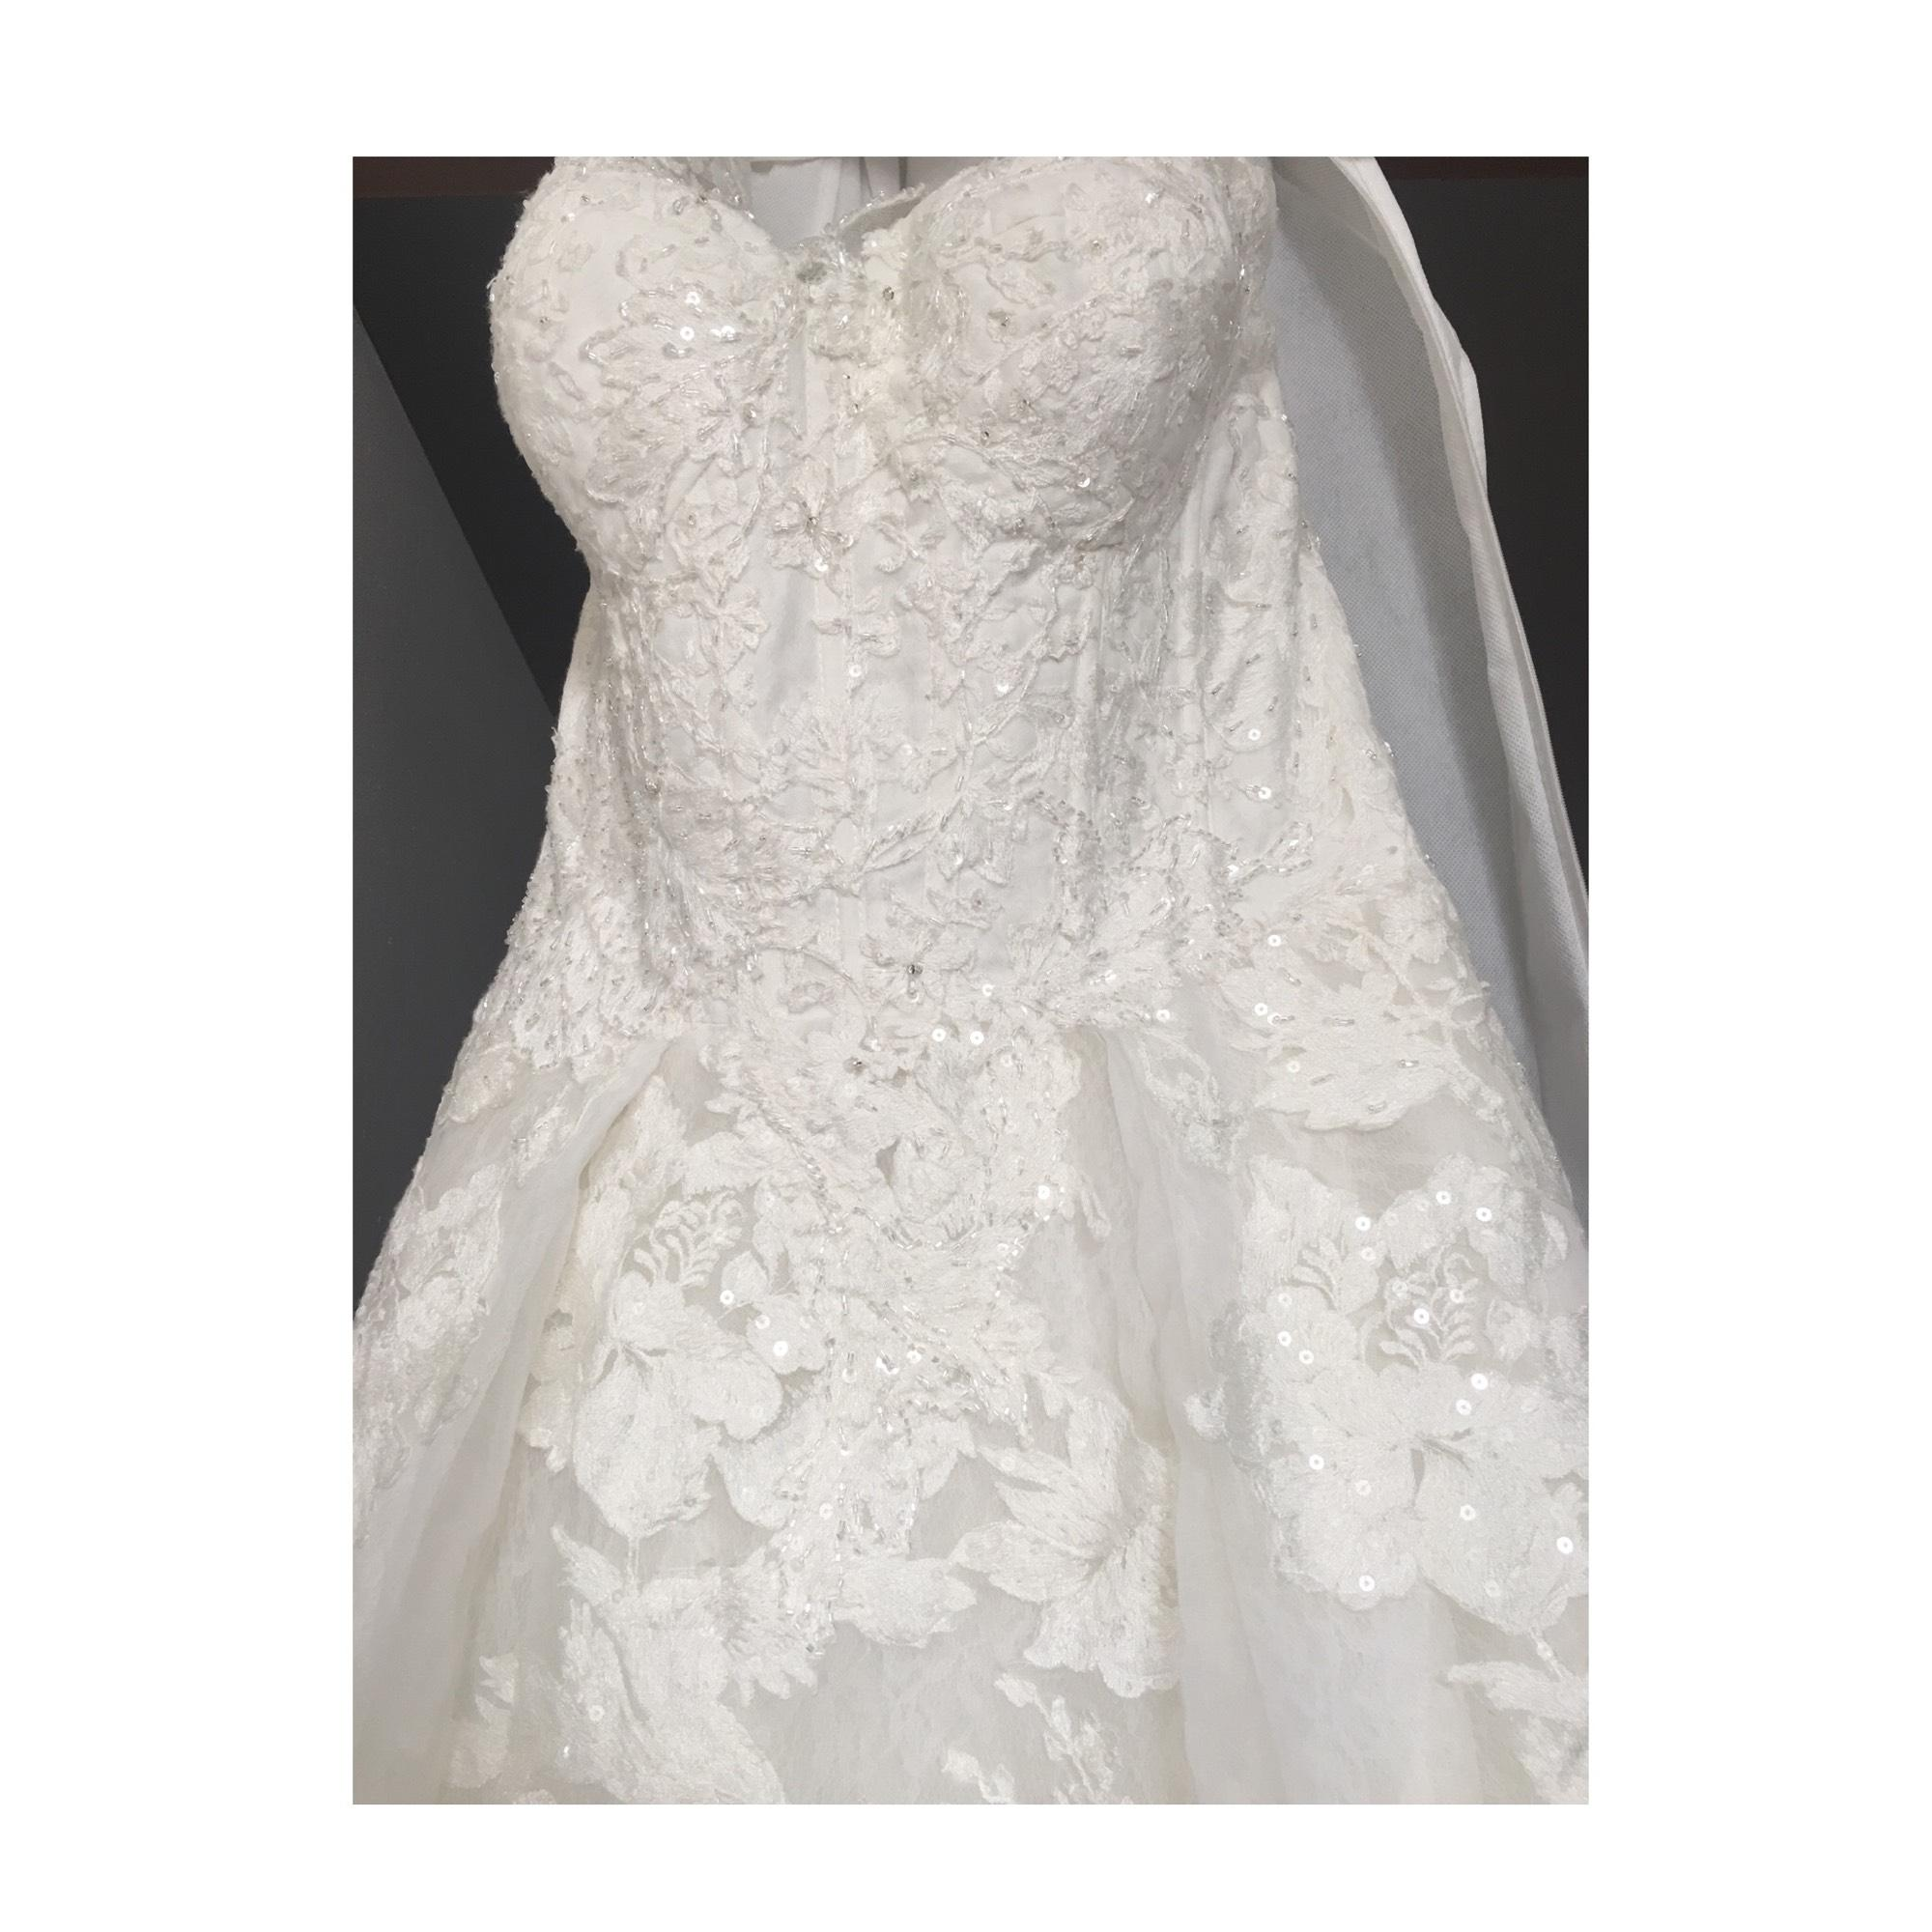 oleg cassini weddings used oleg cassini weddings